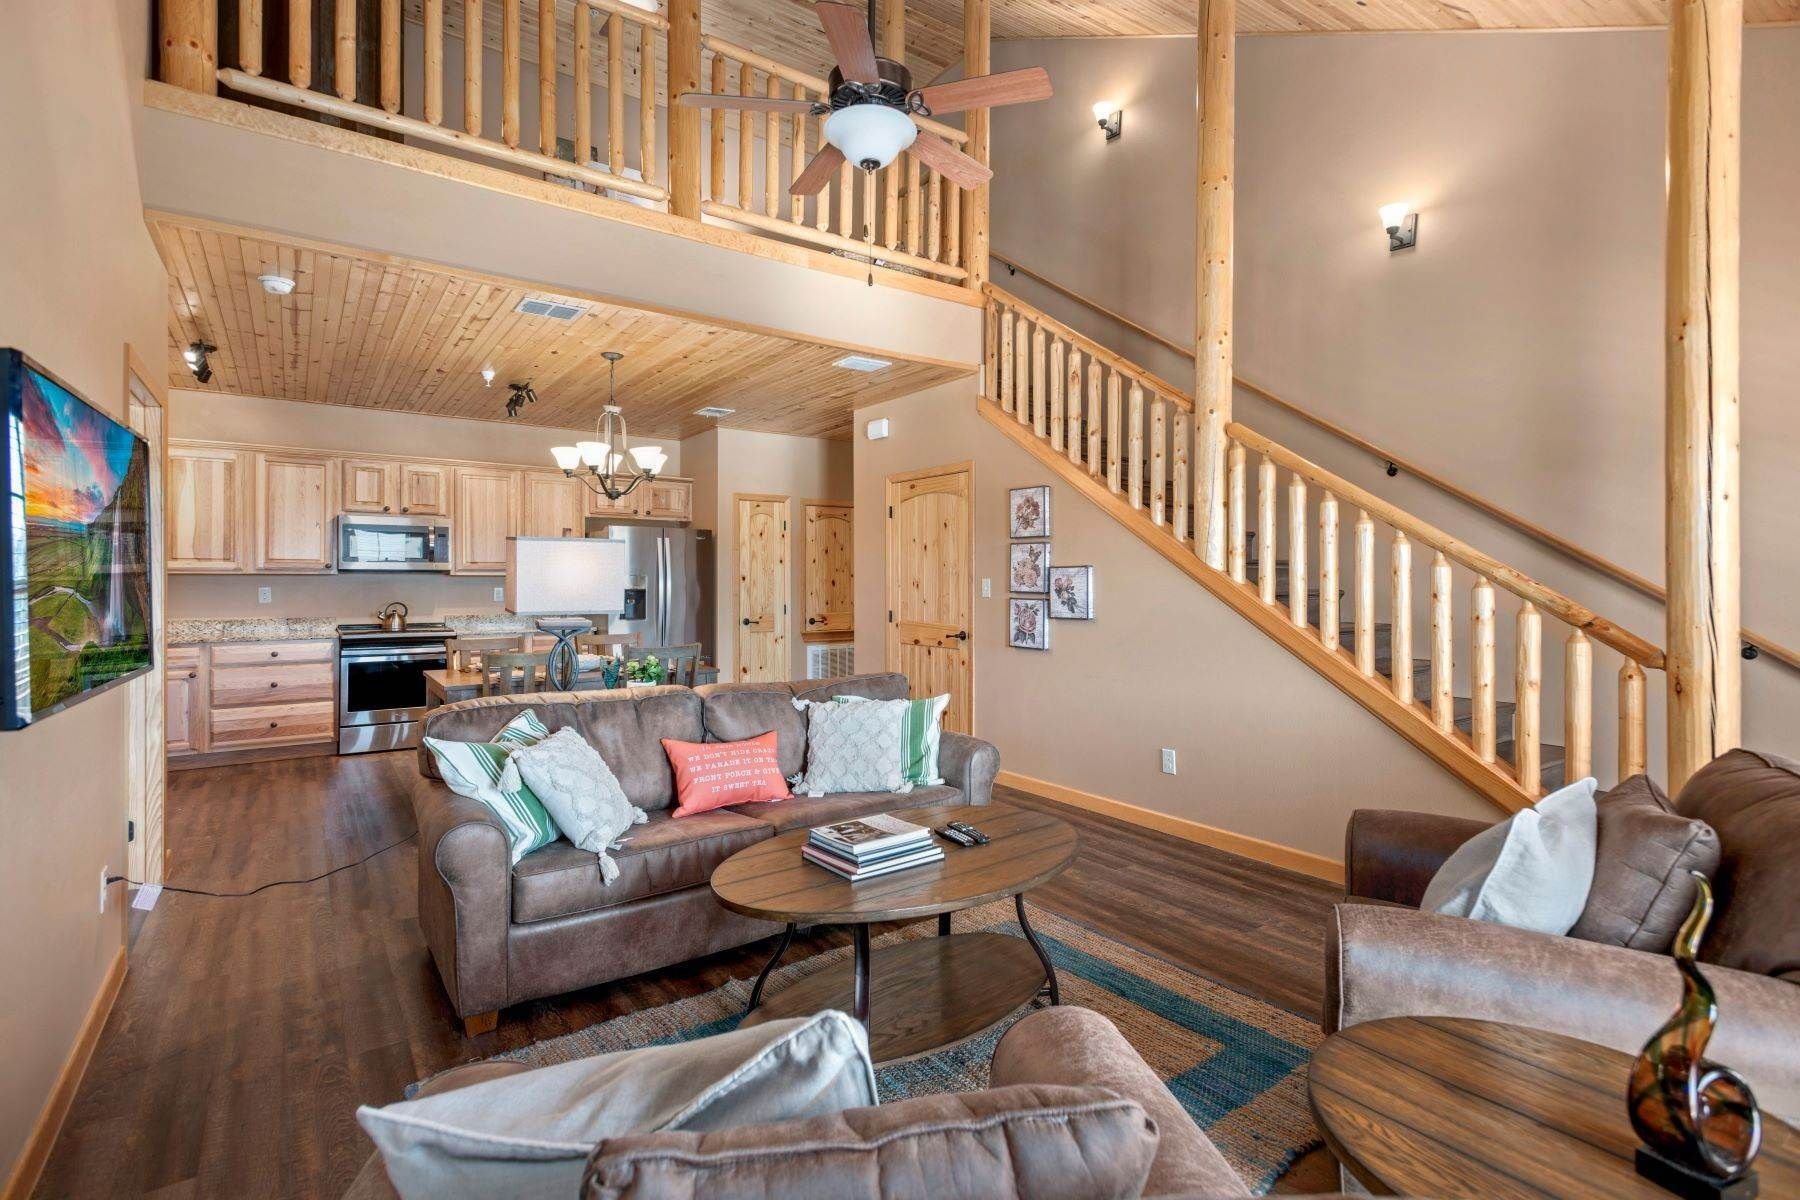 Condominiums for Sale at Fully Furnished Condo in Historic Gruene 1554 Gruene Rd Unit A15 New Braunfels, Texas 78130 United States